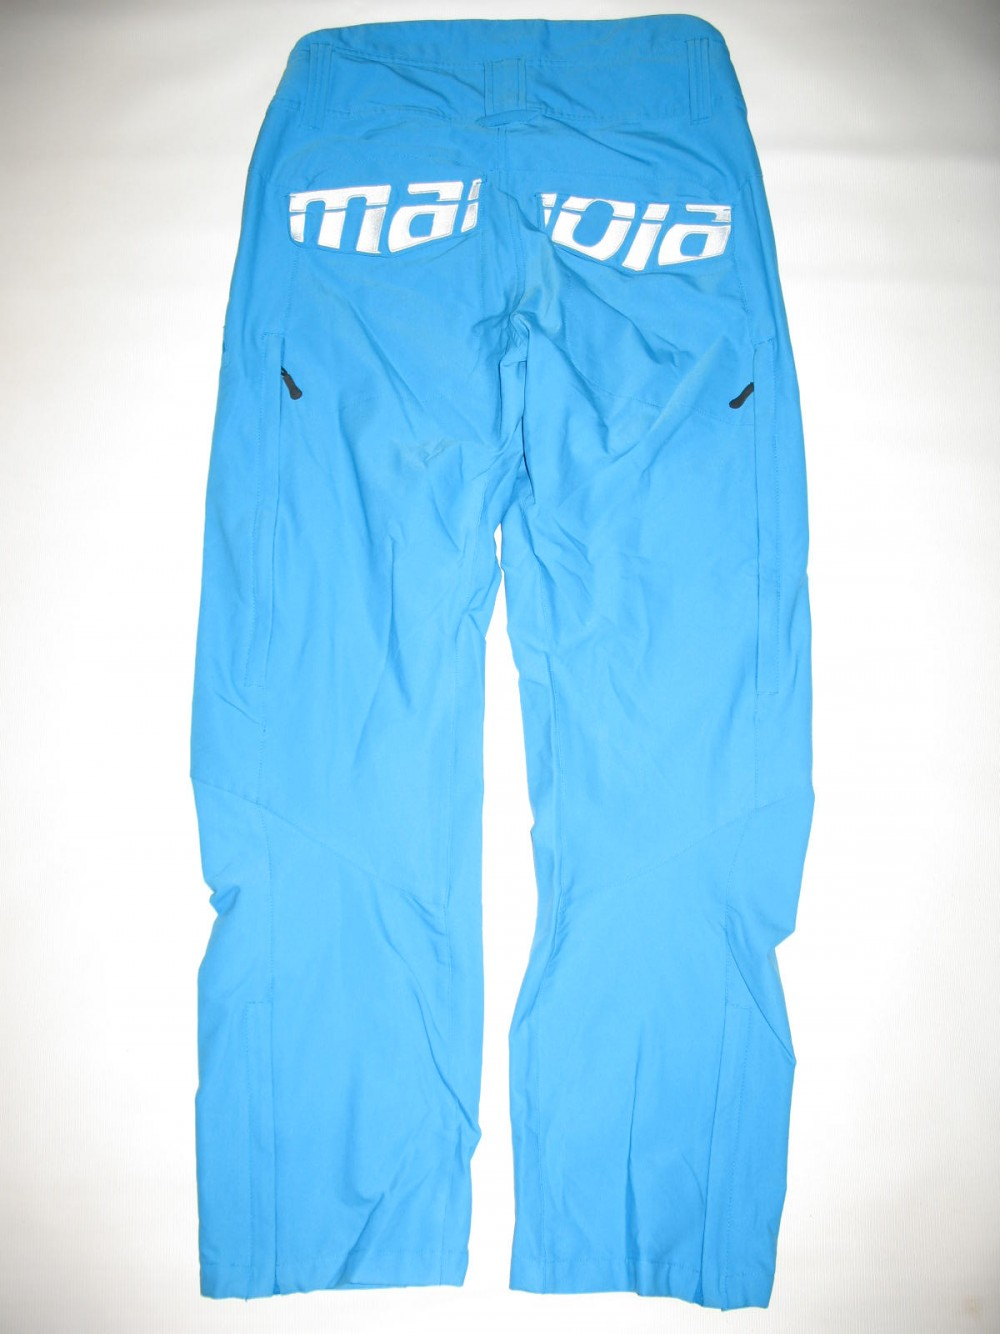 Велоштаны MALOJA 3xdry bike pants (размер M) - 2